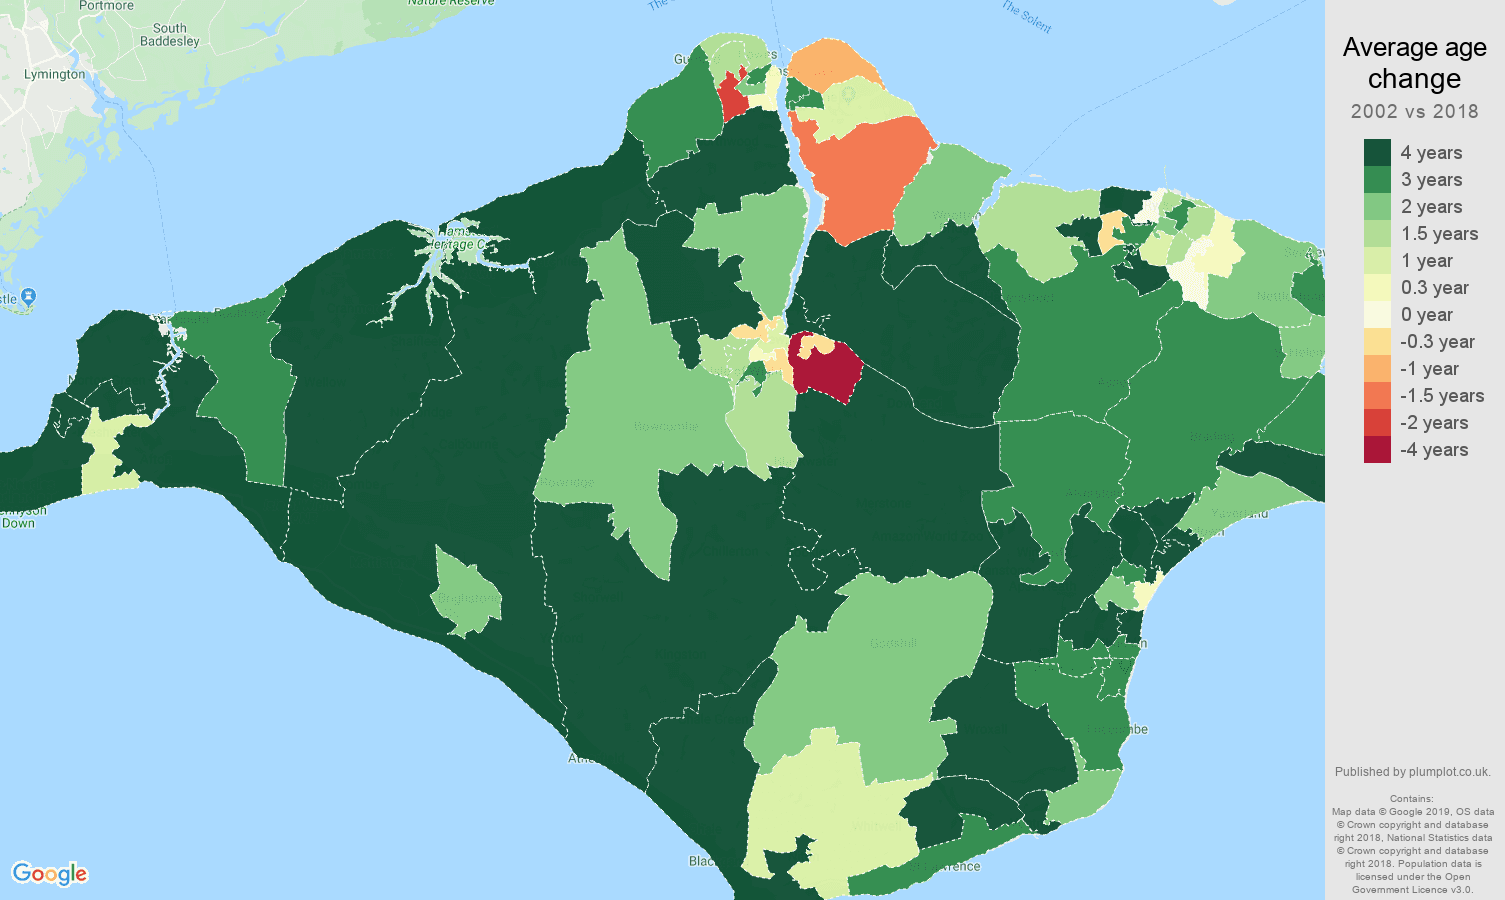 Isle of Wight average age change map